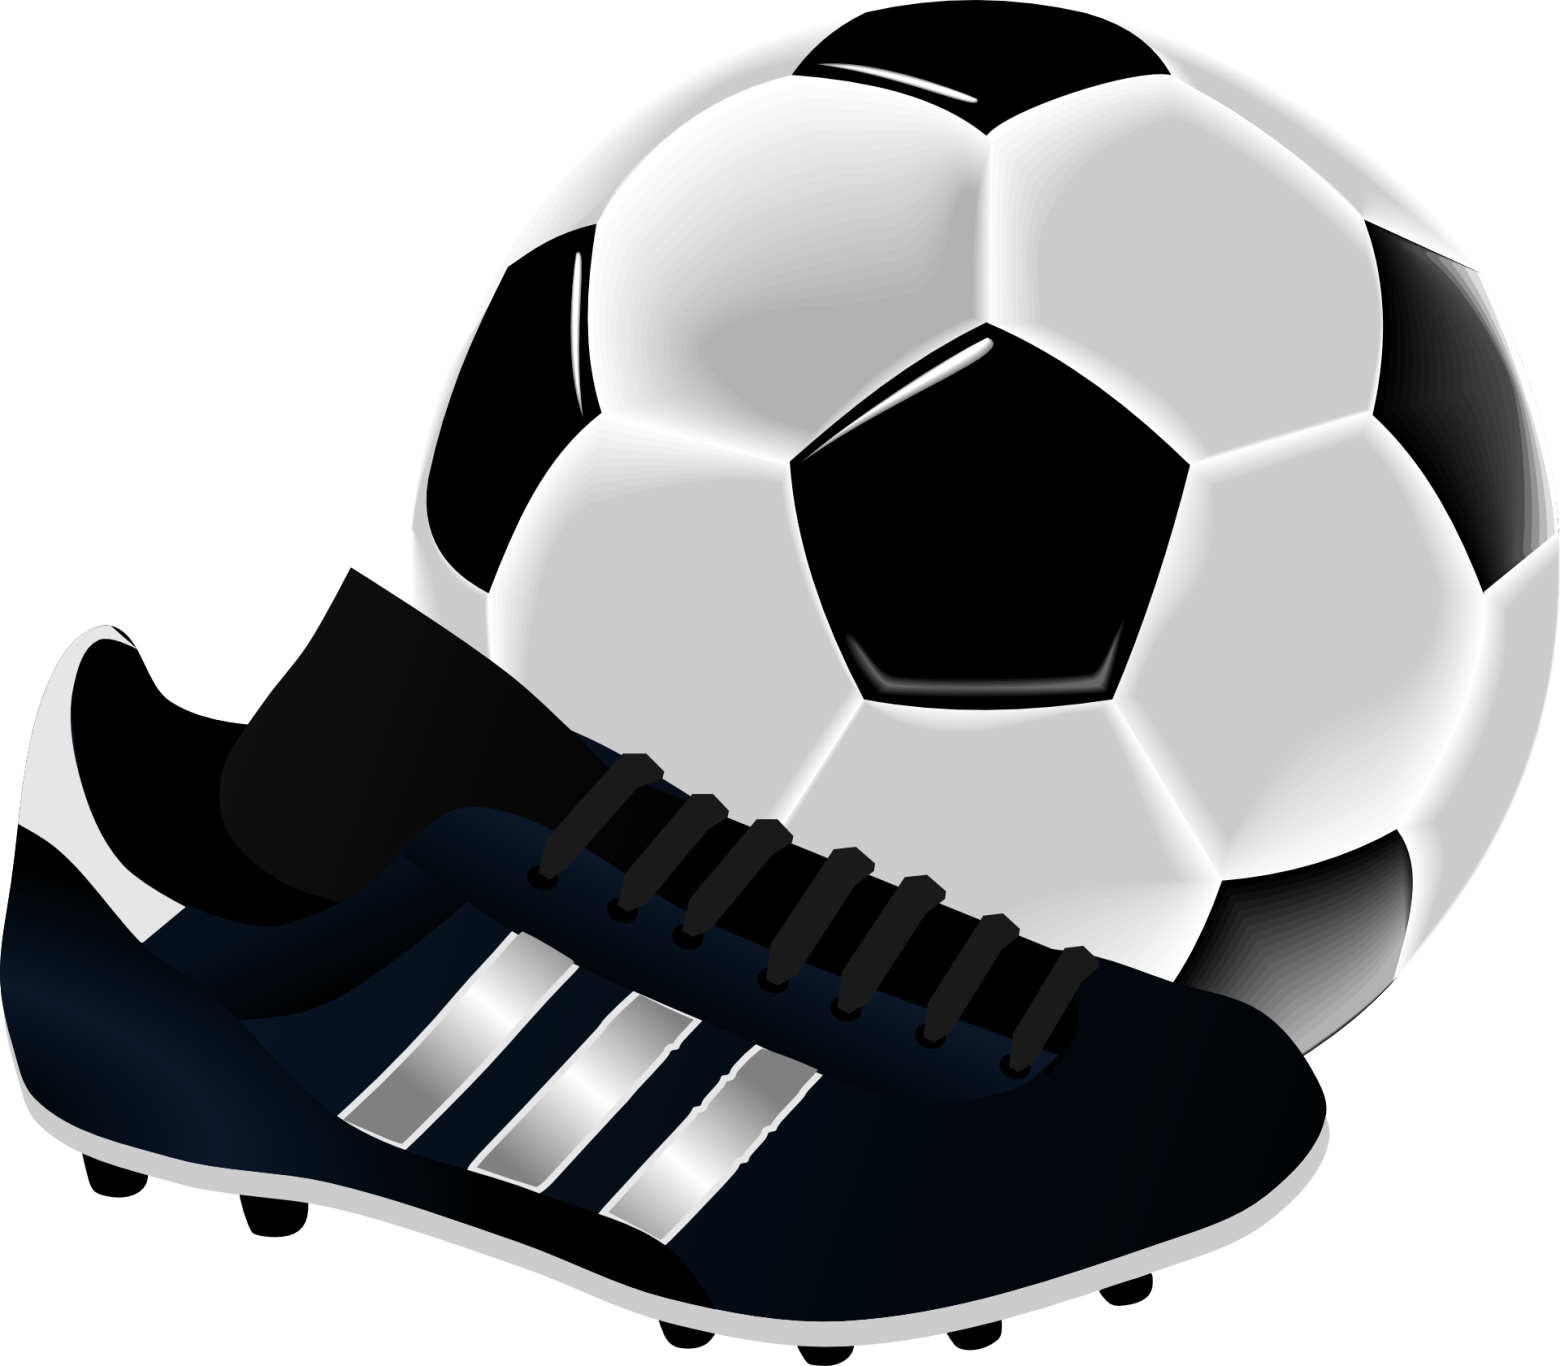 Clipart ballon de foot.